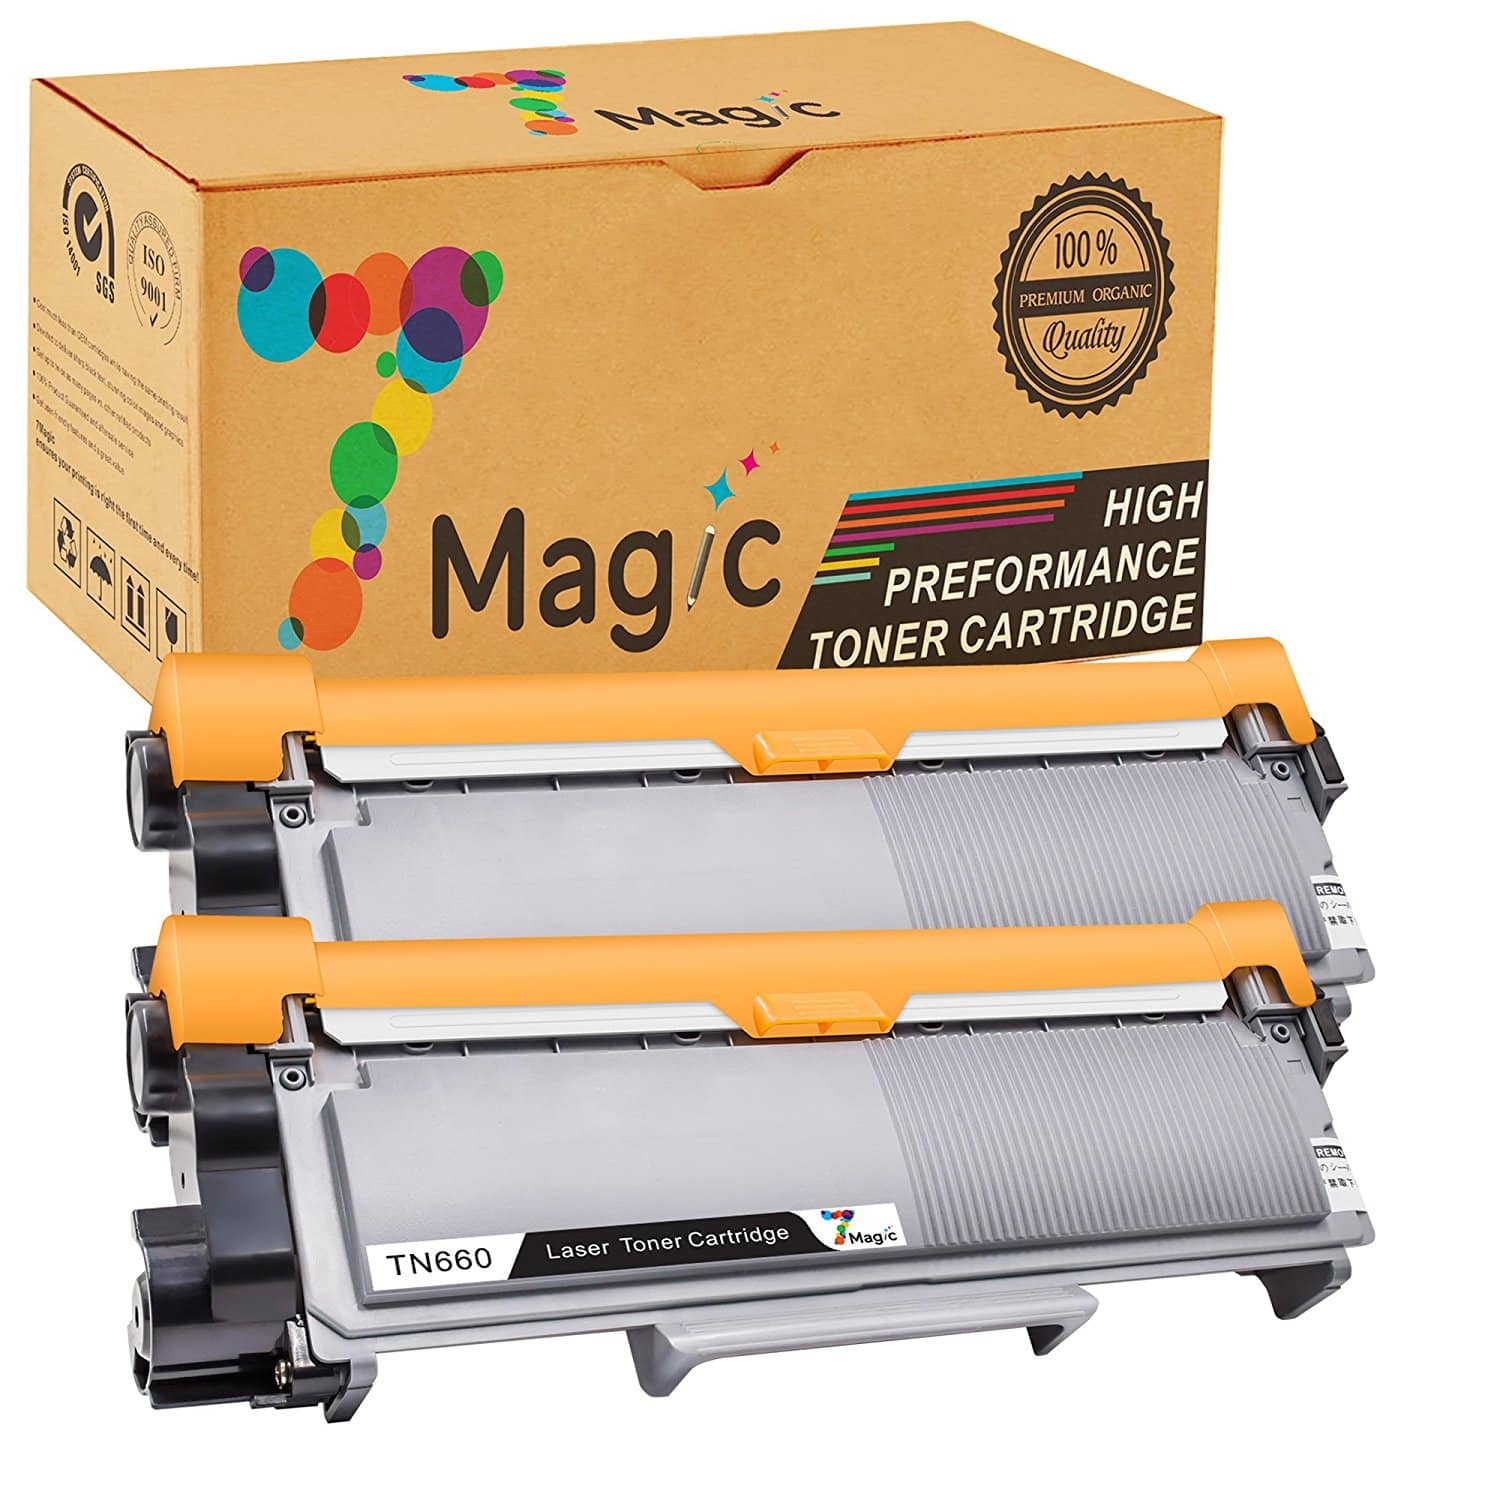 2-Pack TN660 TN630 Compatible Brother Toner Cartridges (2600 pages) $7.50